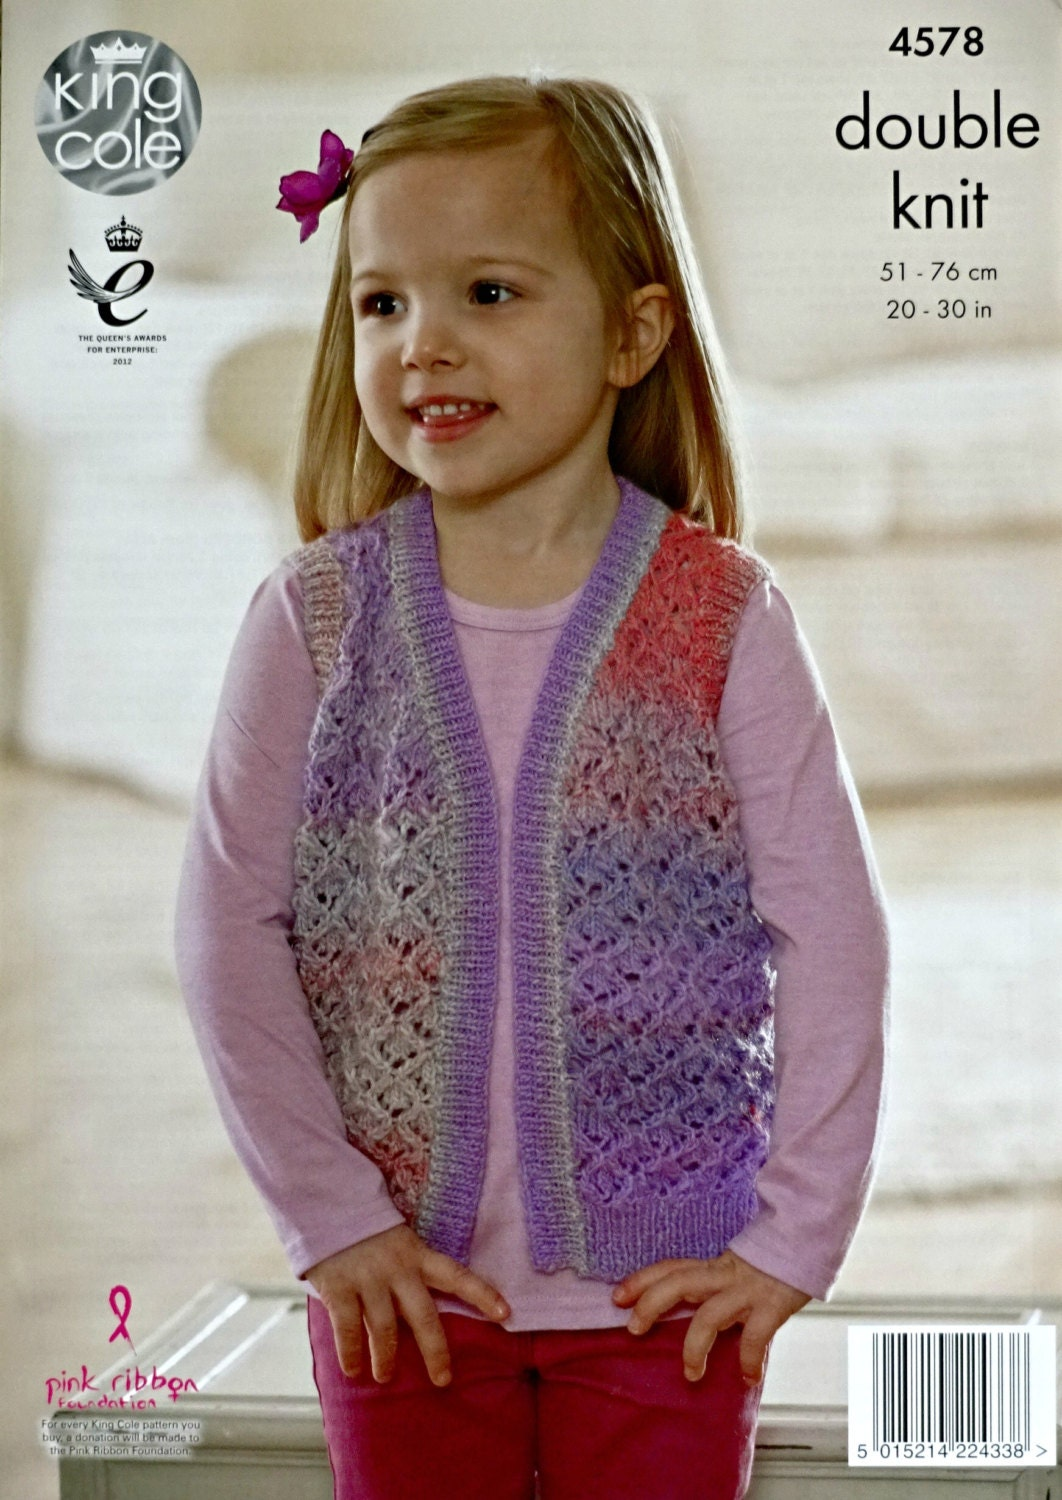 Girls knitting pattern k4578 girls sleeveless lacy waistcoat girls knitting pattern k4578 girls sleeveless lacy waistcoat knitting pattern sprite dk light worsted king cole bankloansurffo Gallery